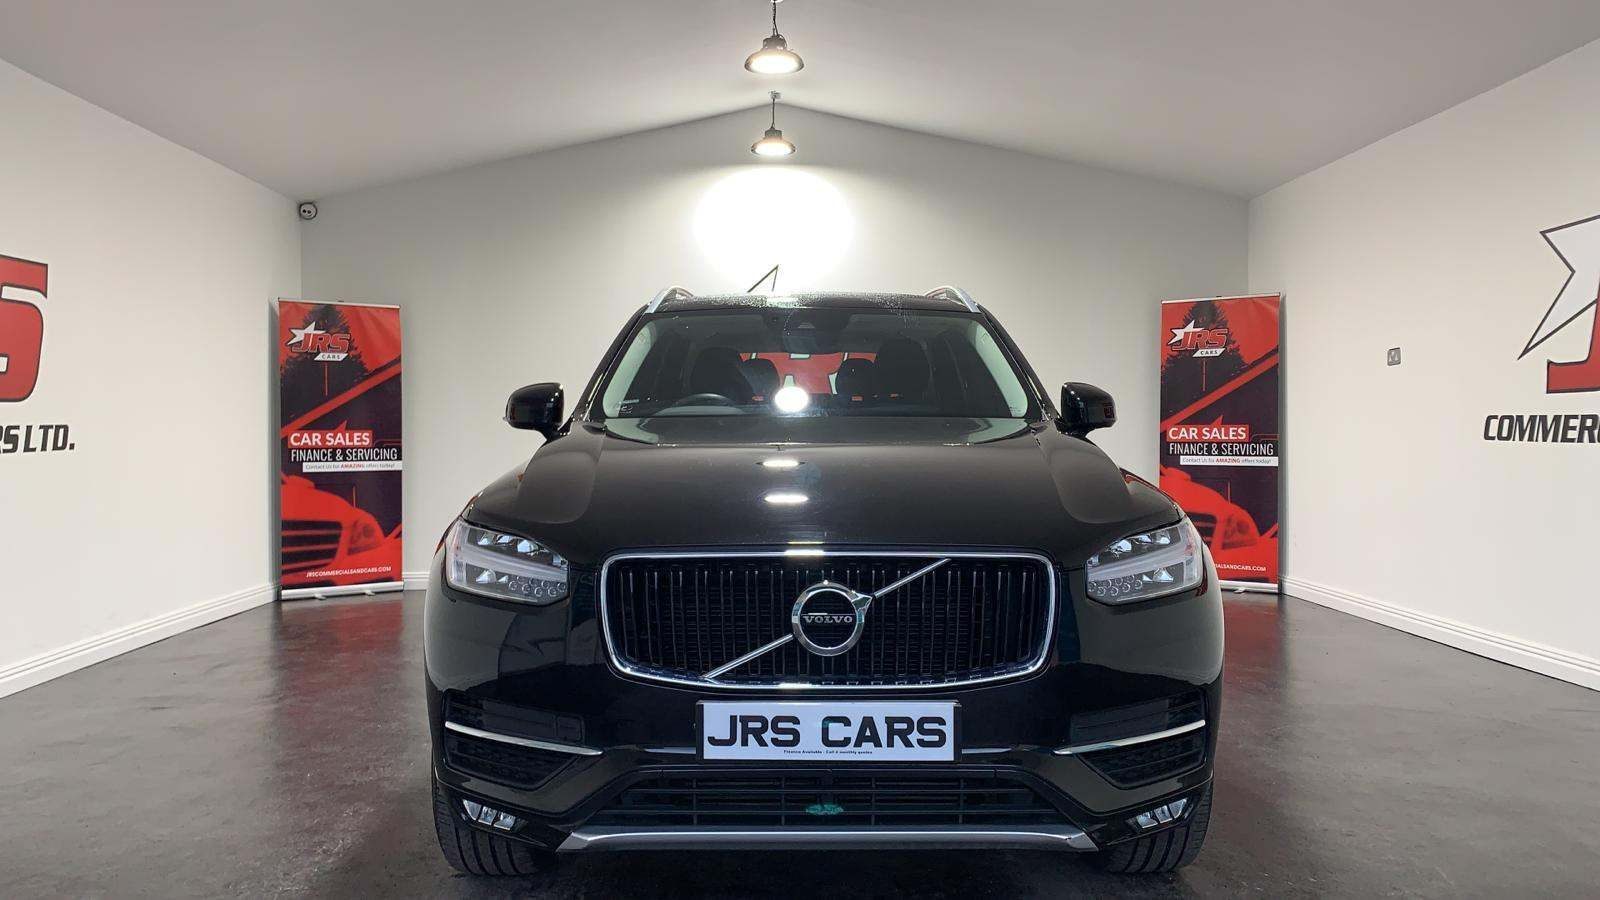 2017 VOLVO XC90 2.0 D5 PowerPulse Momentum Auto 4WD (s/s) Diesel Automatic **7 Seats** – J R S Commercials And Cars Dungannon full